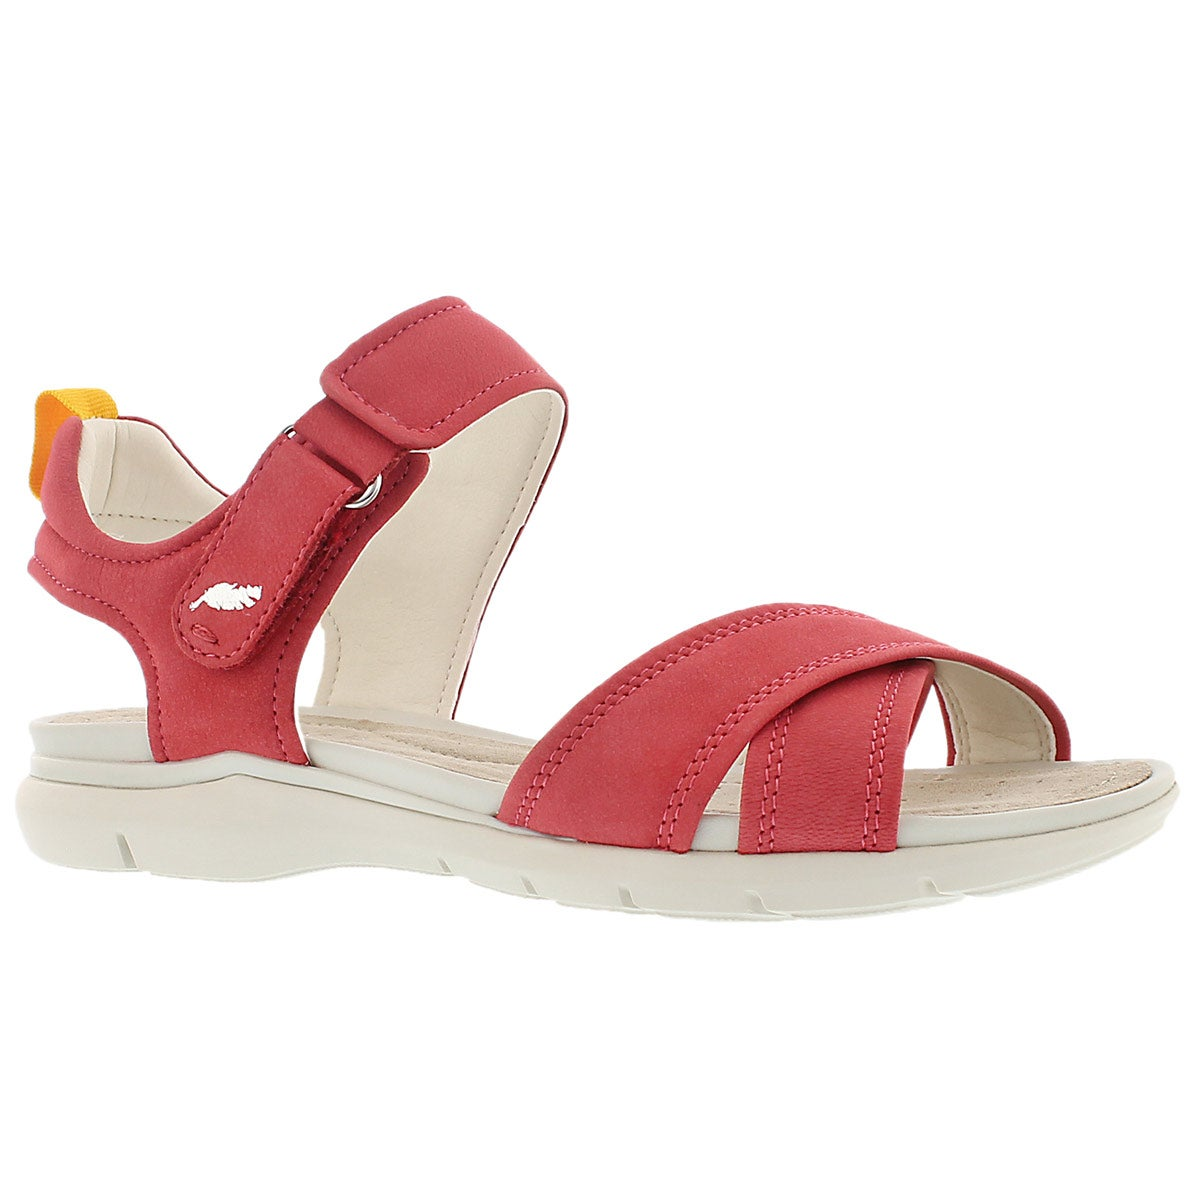 Women's SUKIE coral casual sandals